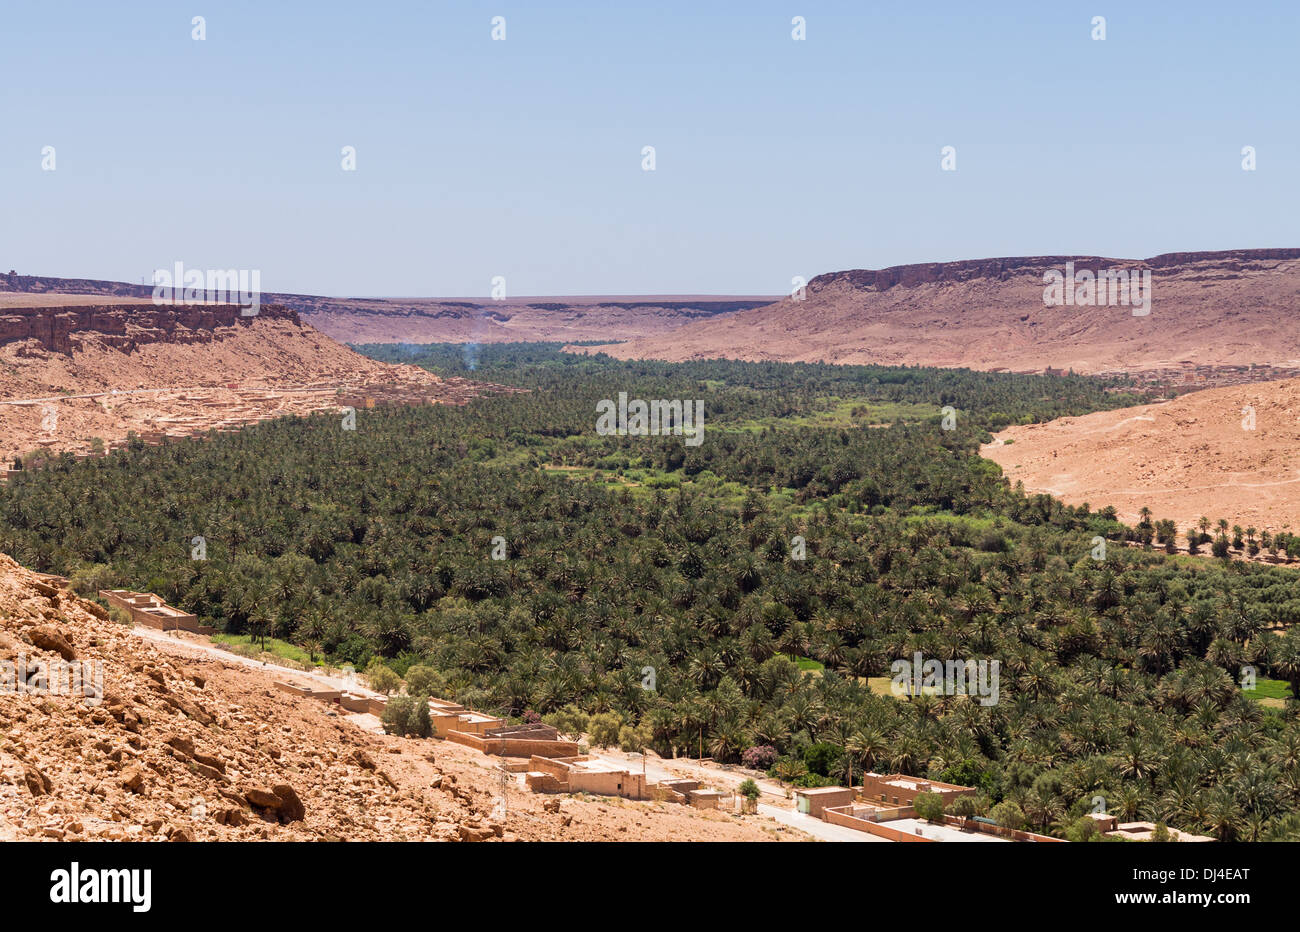 Ziz River valley at the town of Aoufous, in Errachidia Province, Morocco, Africa - Stock Image